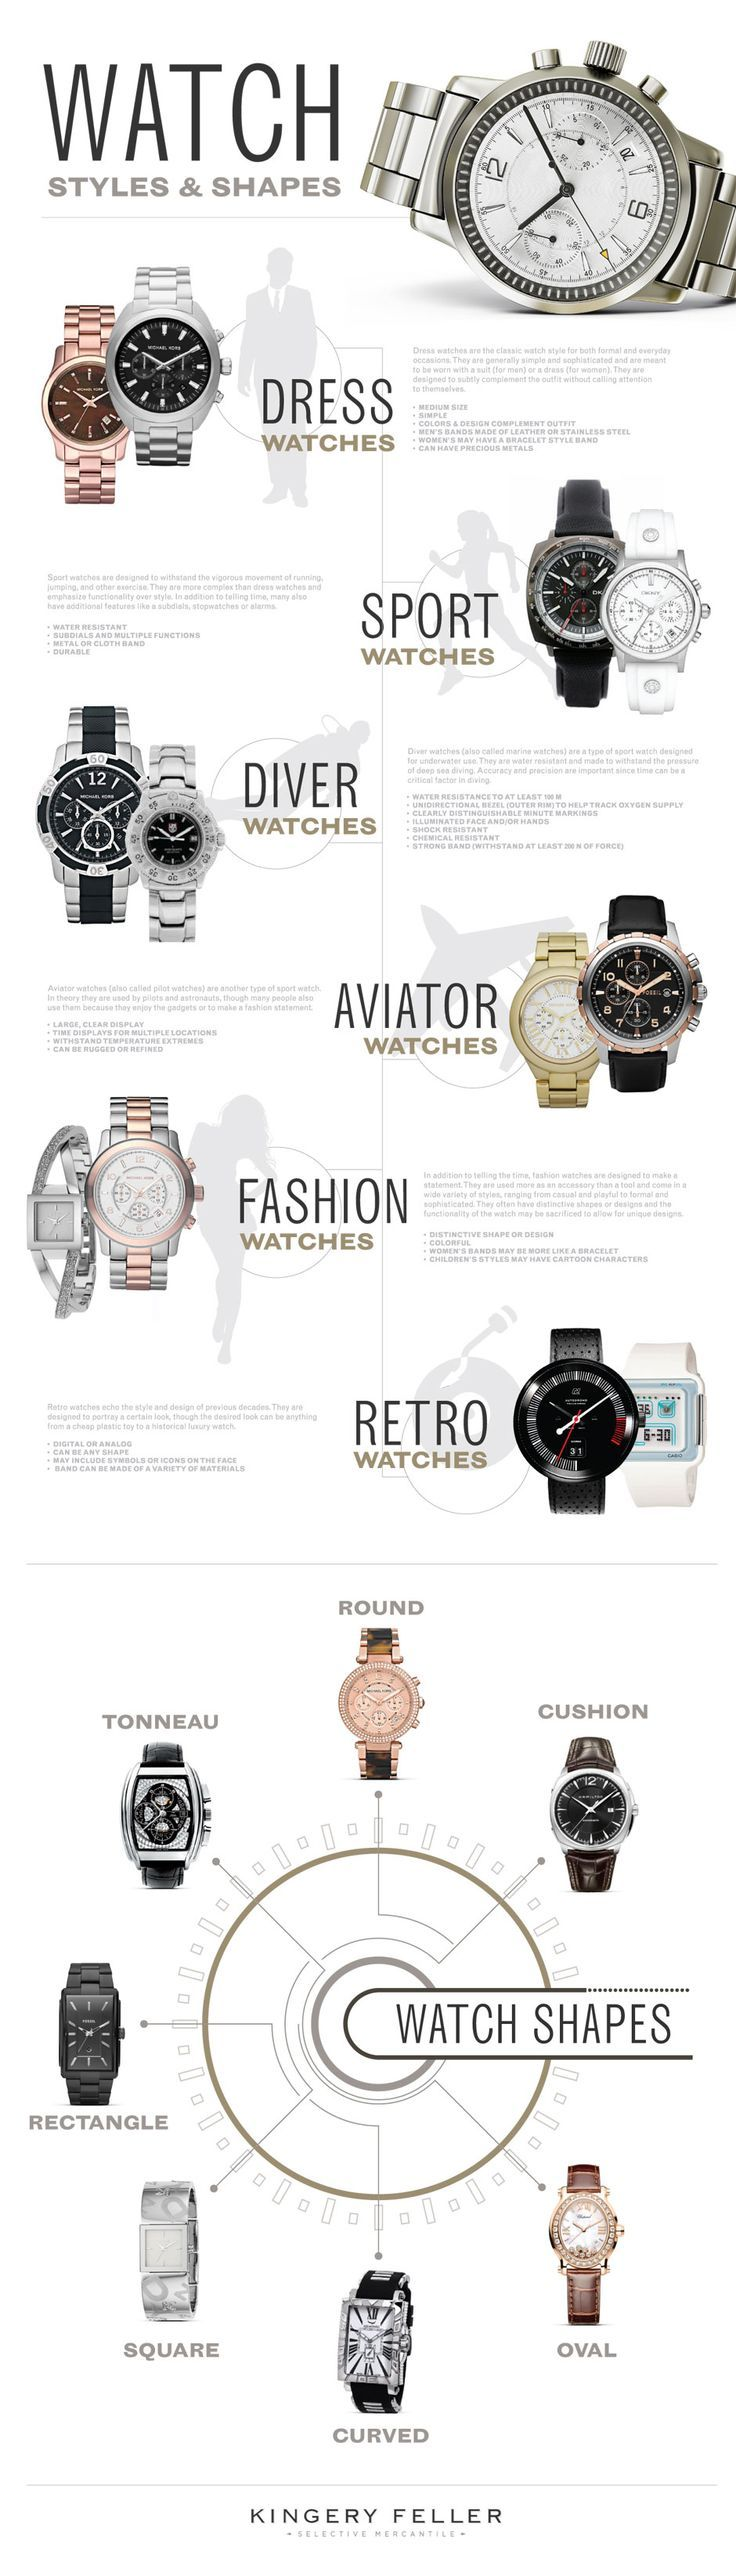 Watch Styles And Shapes The Infographic Watch Mens Watches Guide Fashion Watches Watches For Men